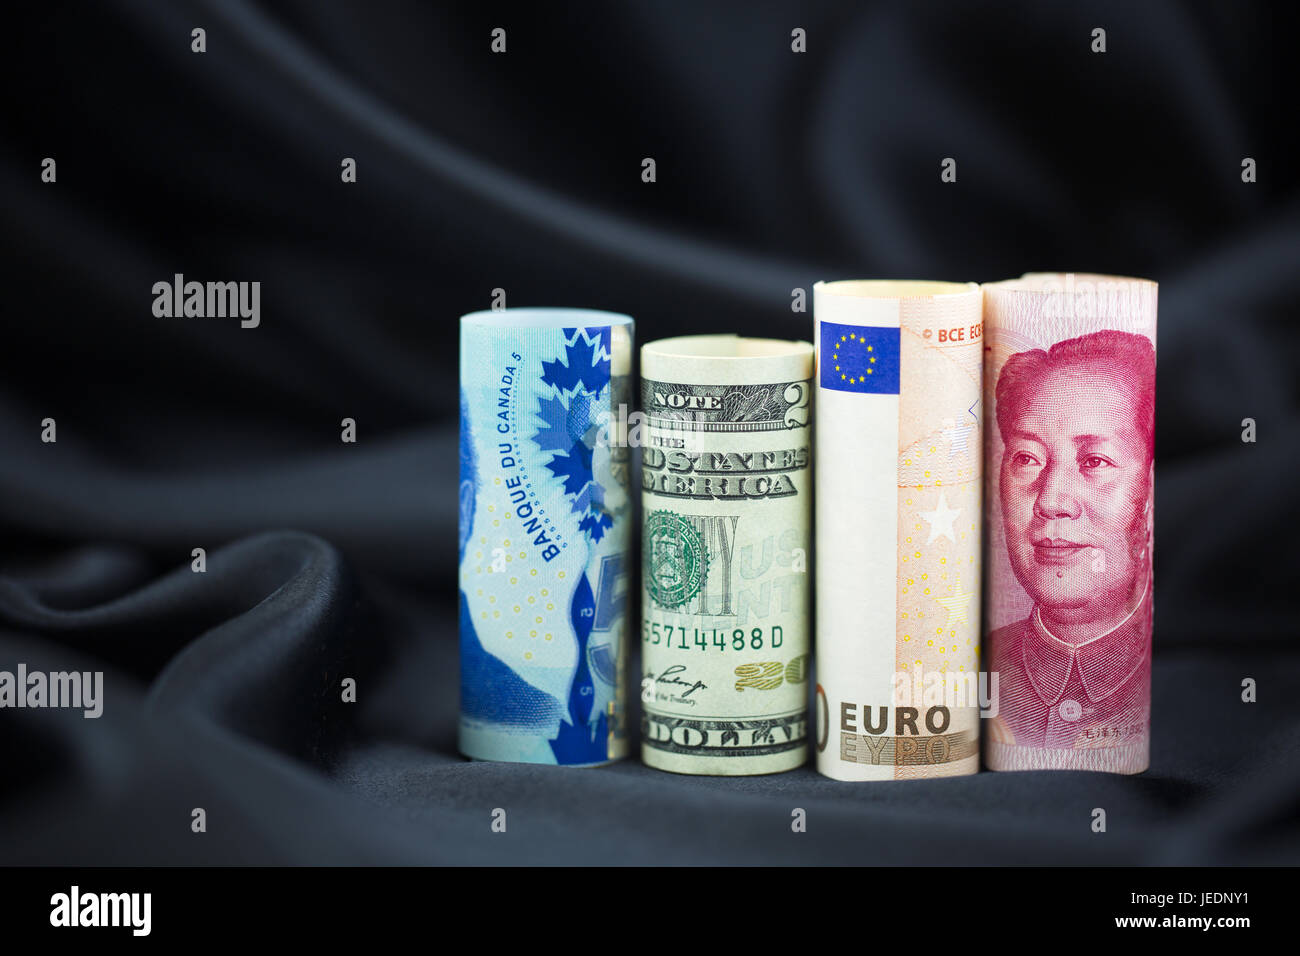 Need for portfolio diversity and worldwide investment seen in assortment of key, global currencies. - Stock Image